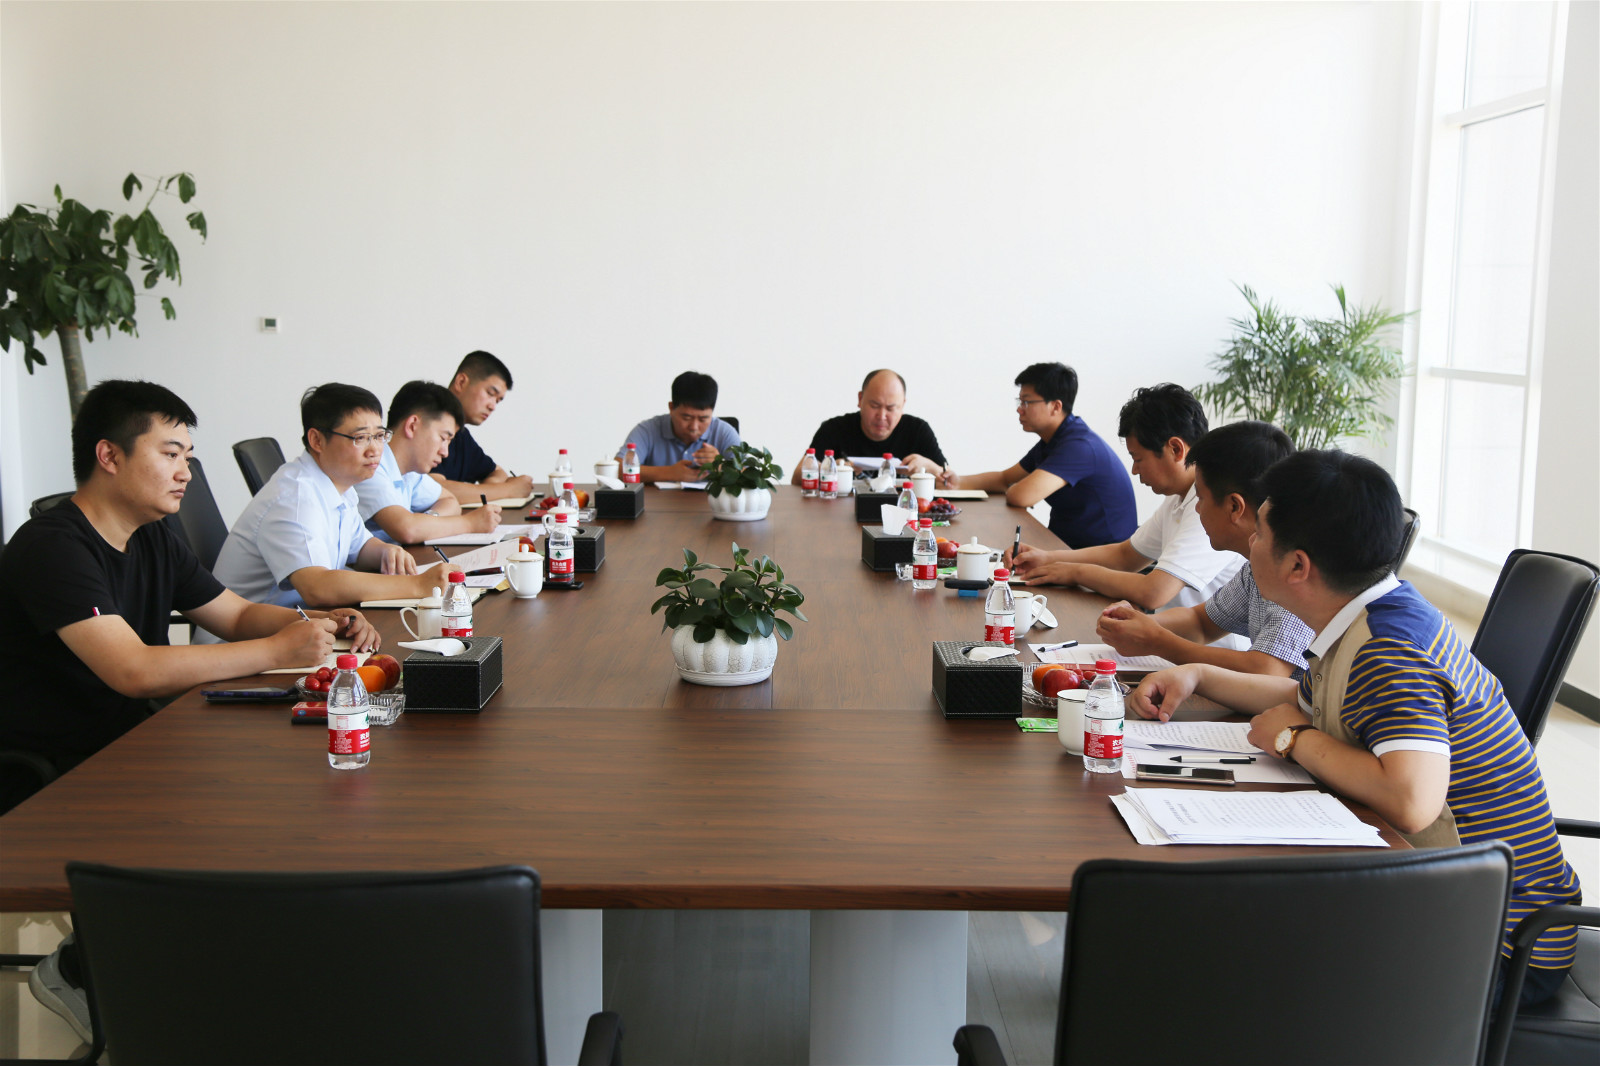 Liu donghai, deputy district chief of wuqing district, and his delegation visited the company for investigation